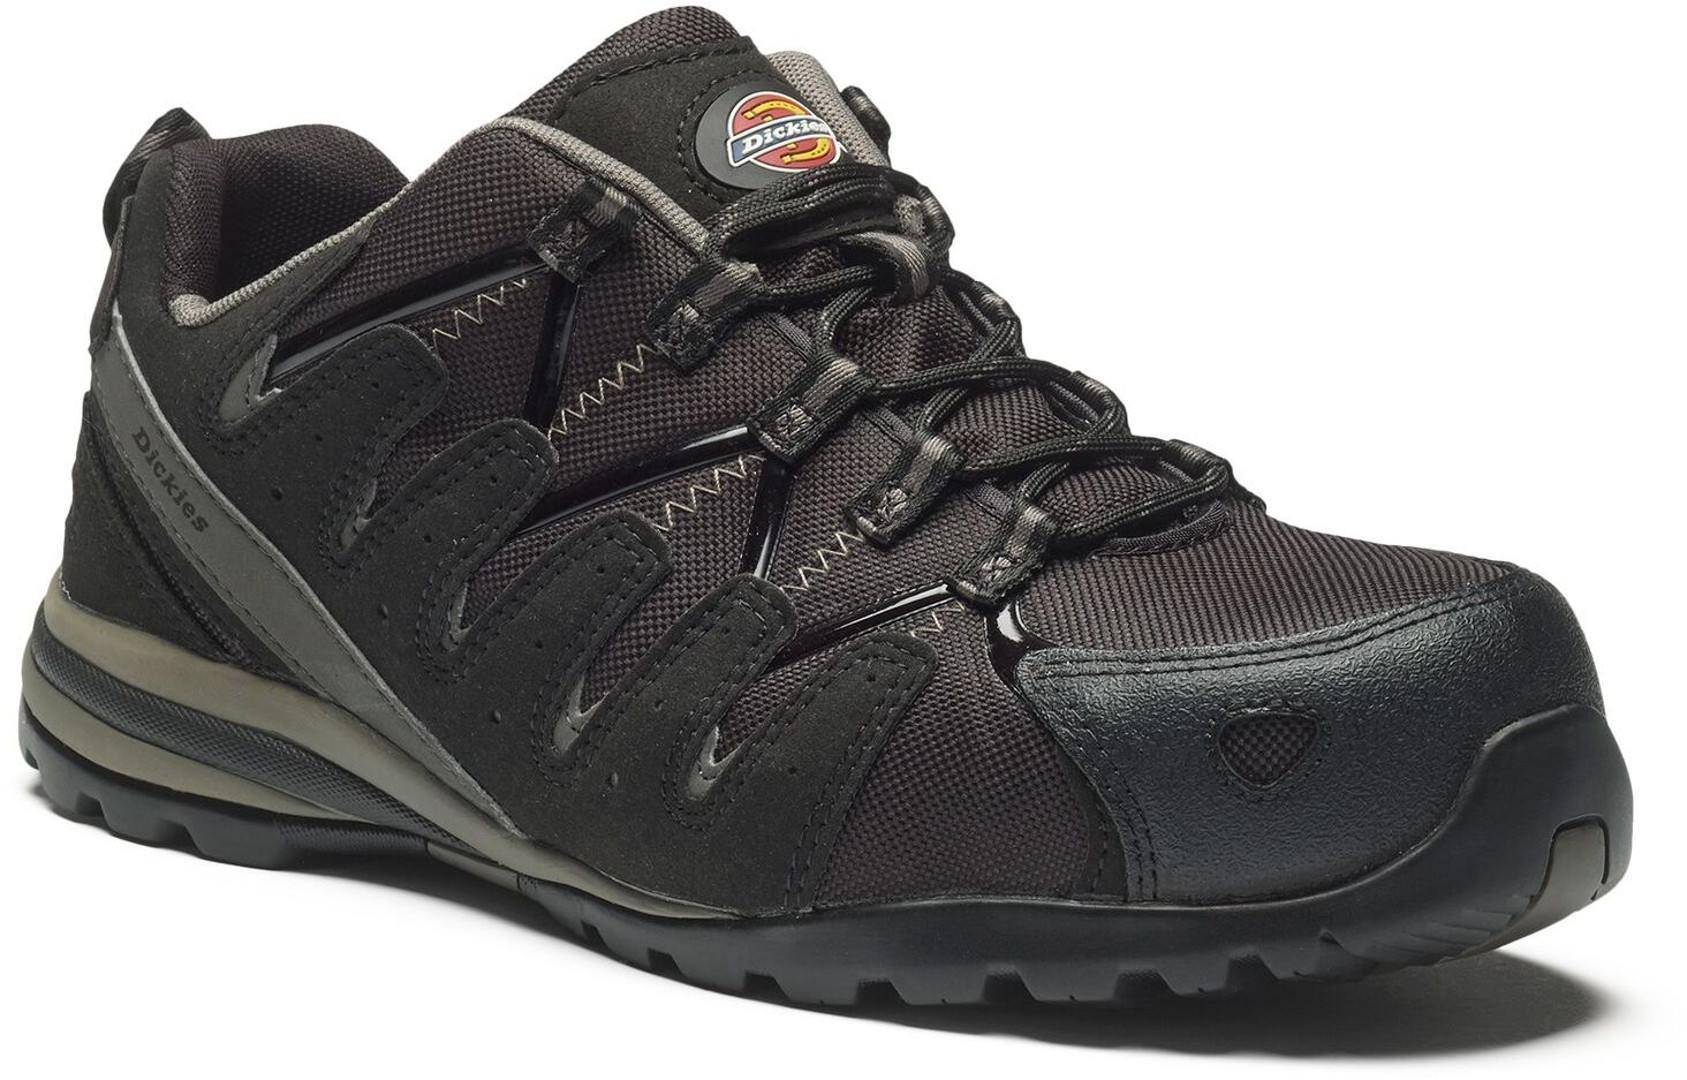 Dickies Workwear Tiber Safety Shoes Black 36